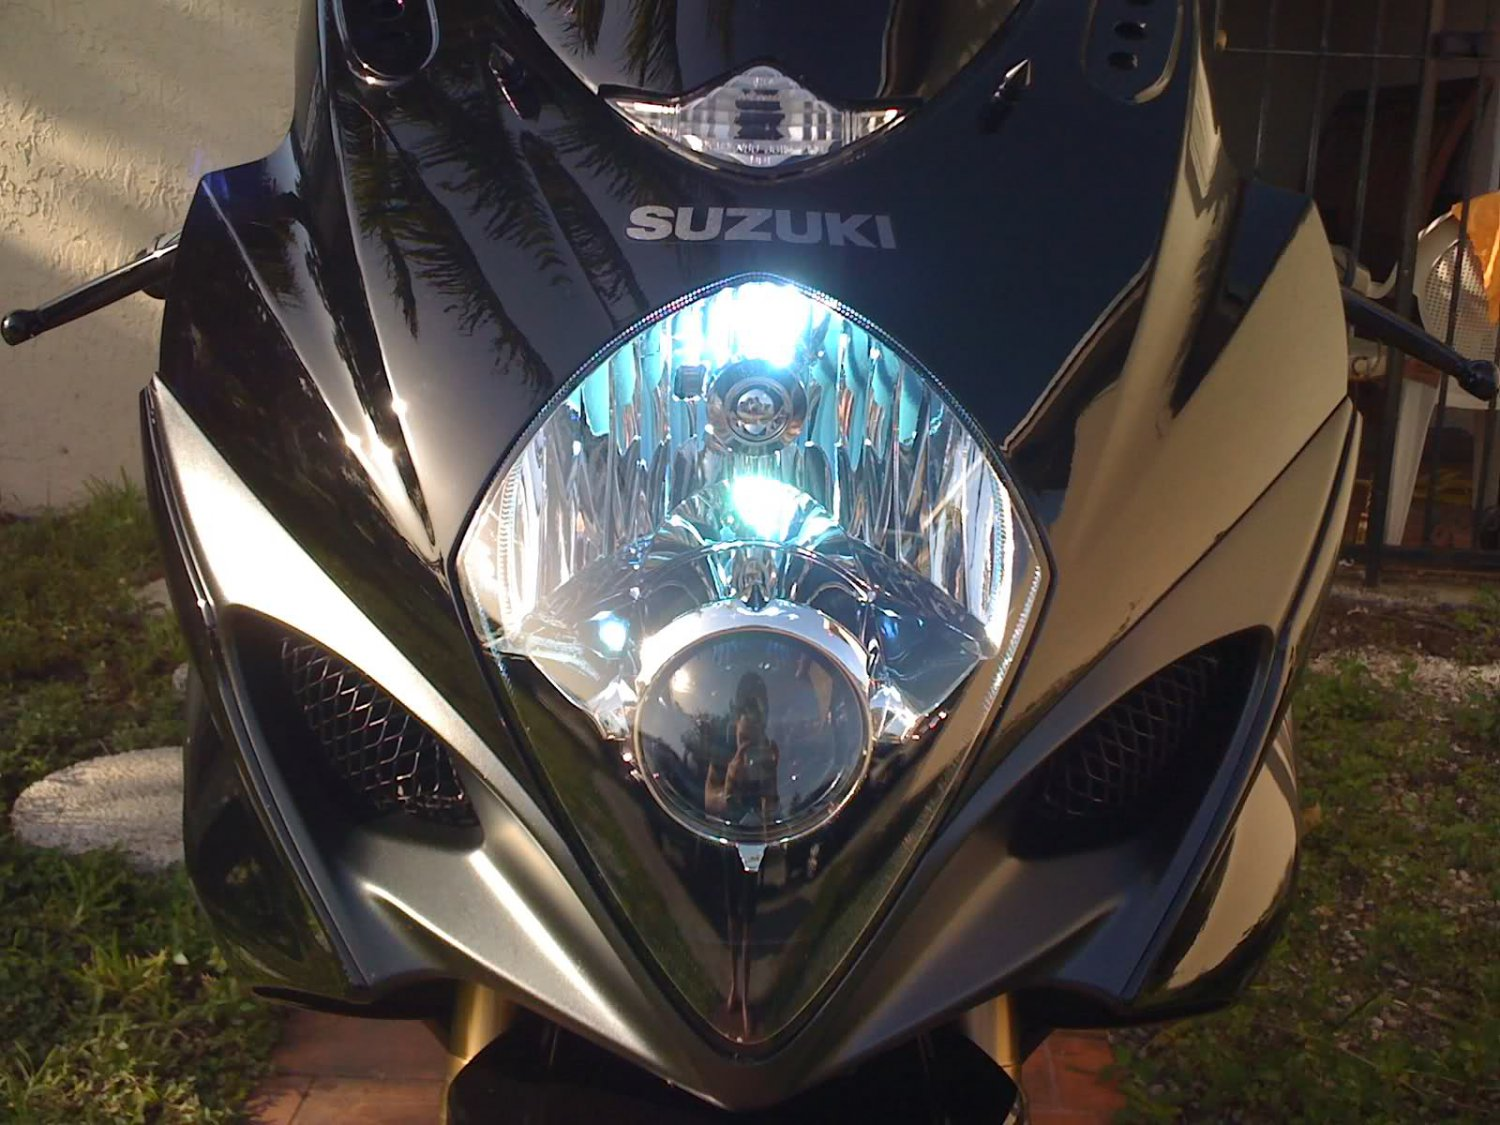 2006 2007 Suzuki GSX-R750 GSXR 750 Bright White High Low Light Bulbs Headlamp Headlight